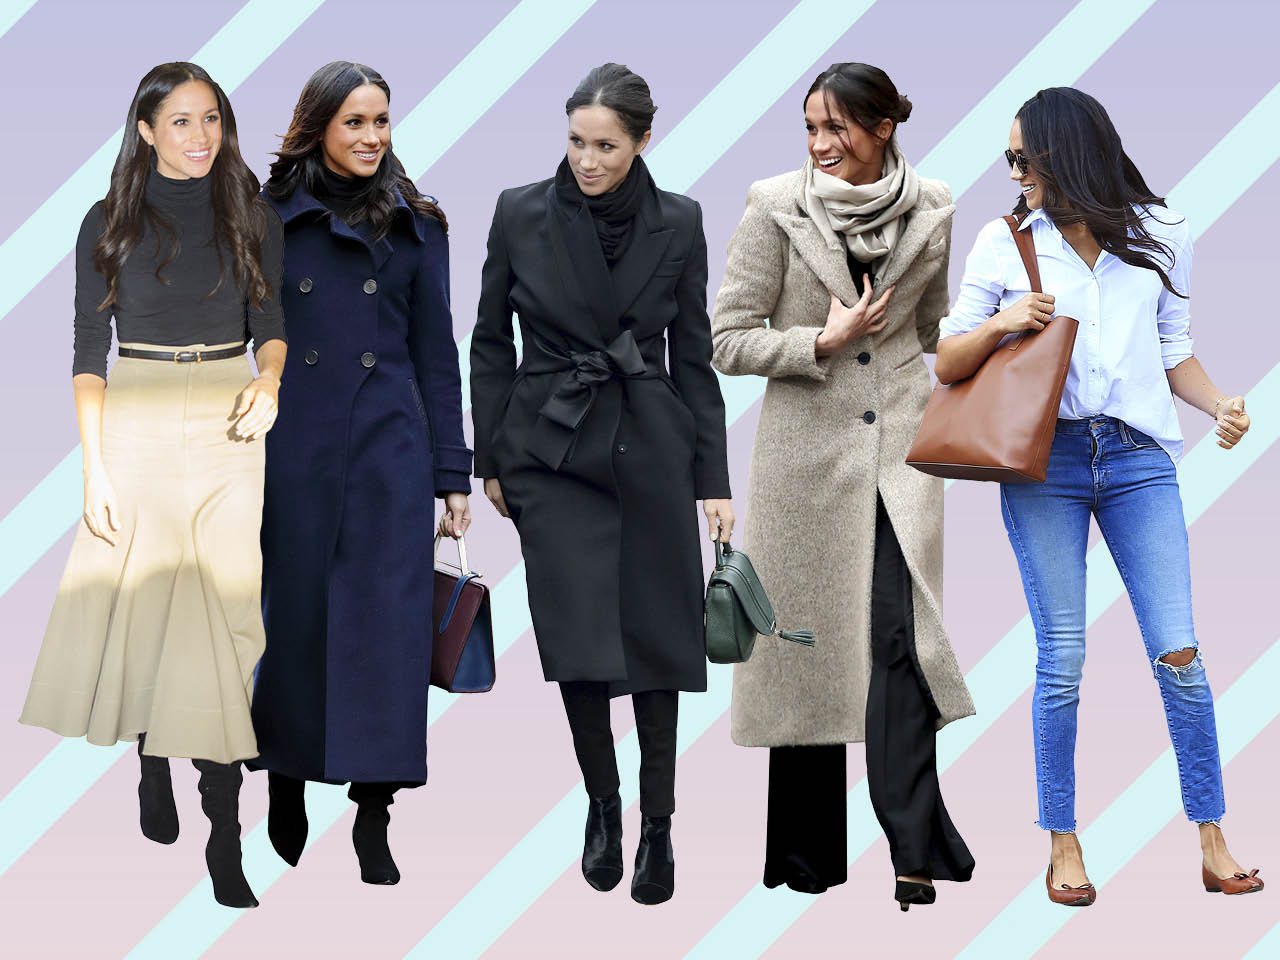 In Photos: Meghan Markle's Style